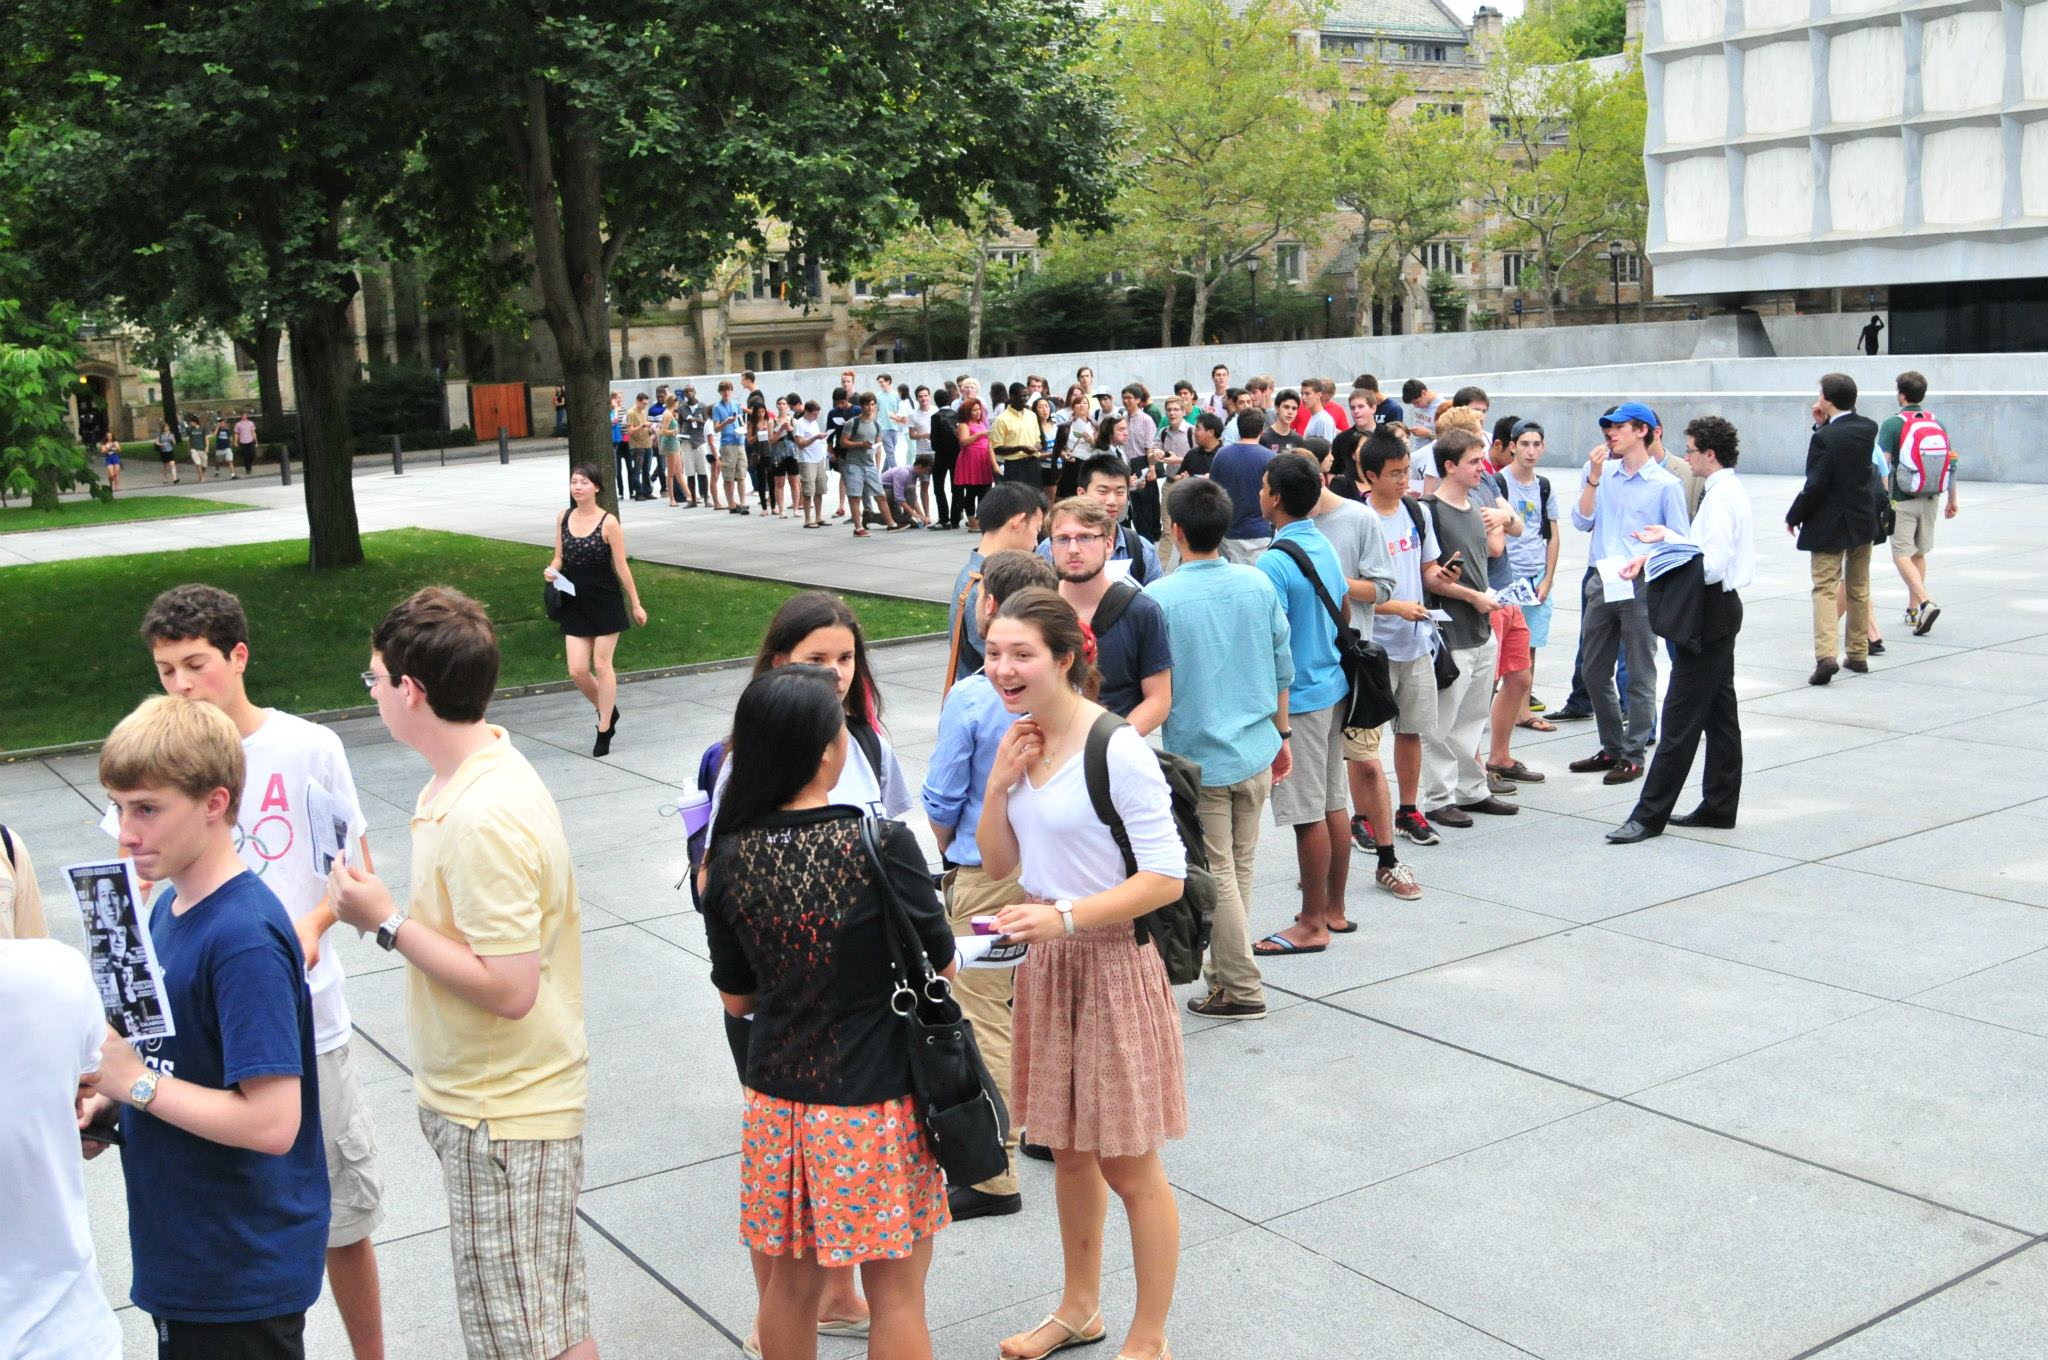 Students Wait to Enter Lecture Hall